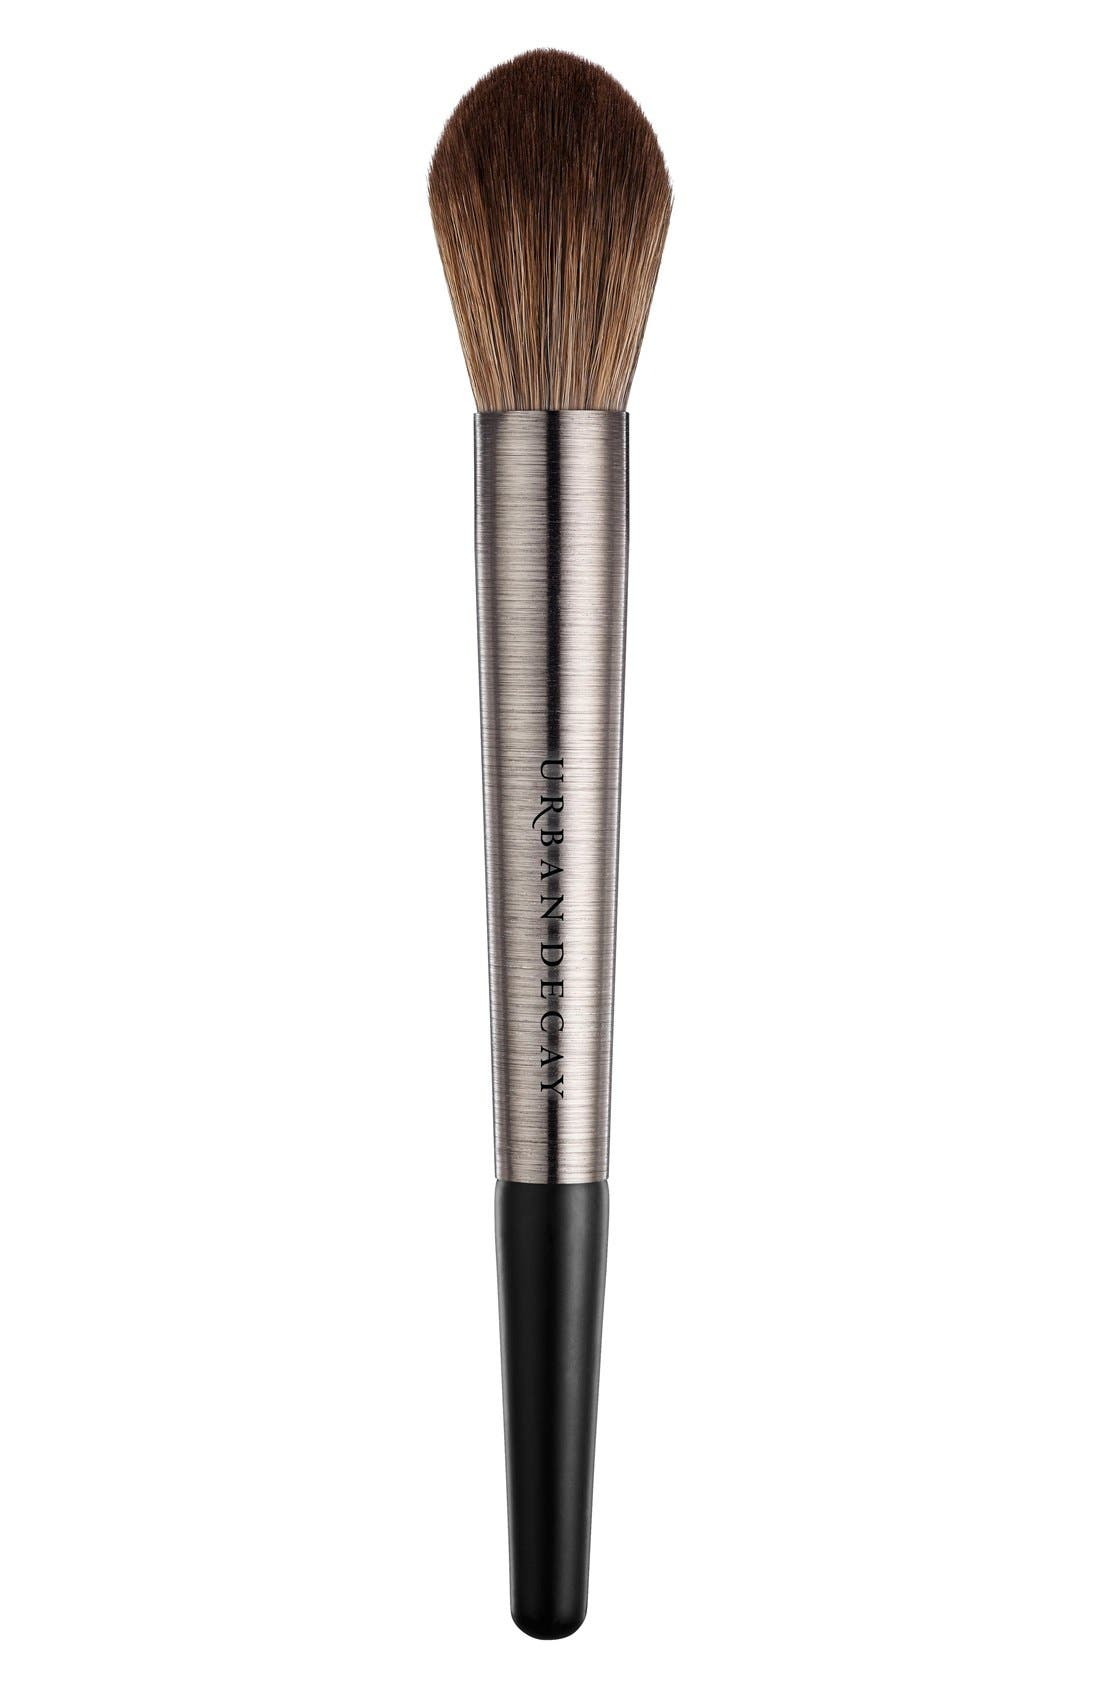 Urban Decay 'Pro' Large Tapered Powder Brush